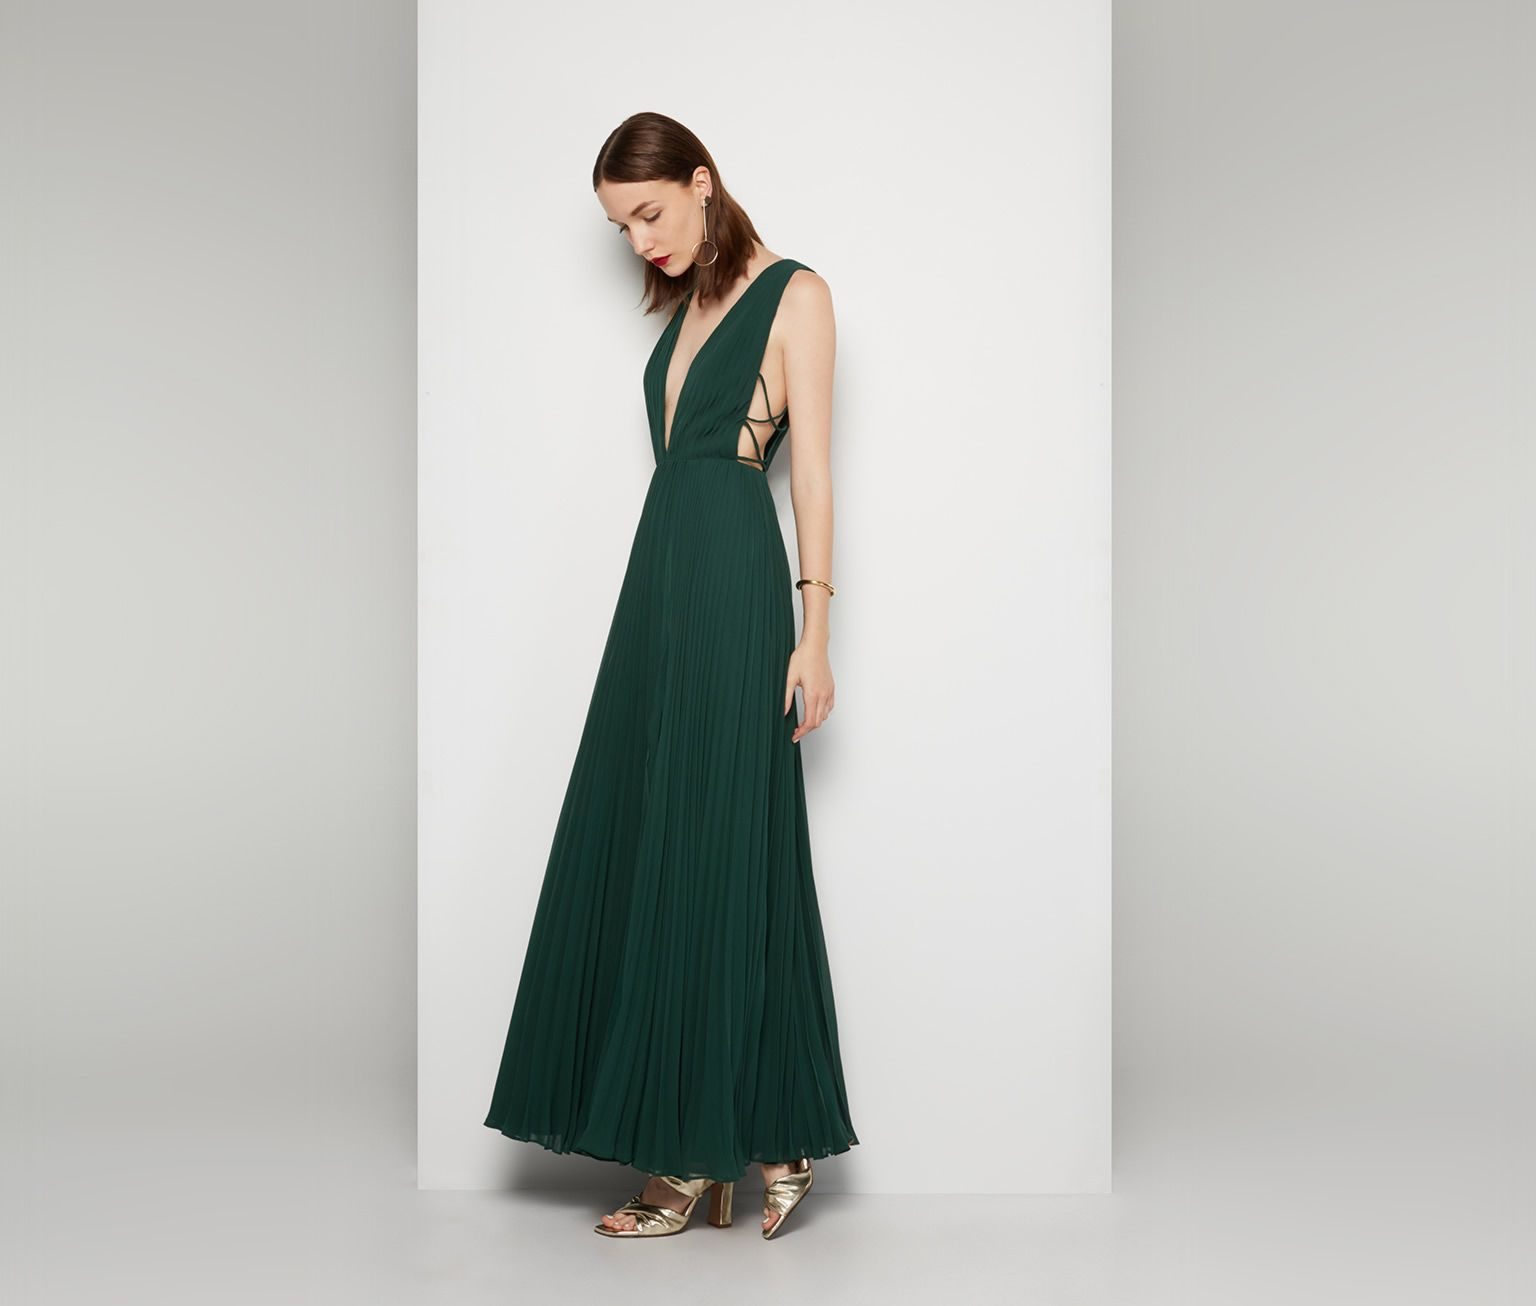 Embodiment of tenderness: a dress with a fringe